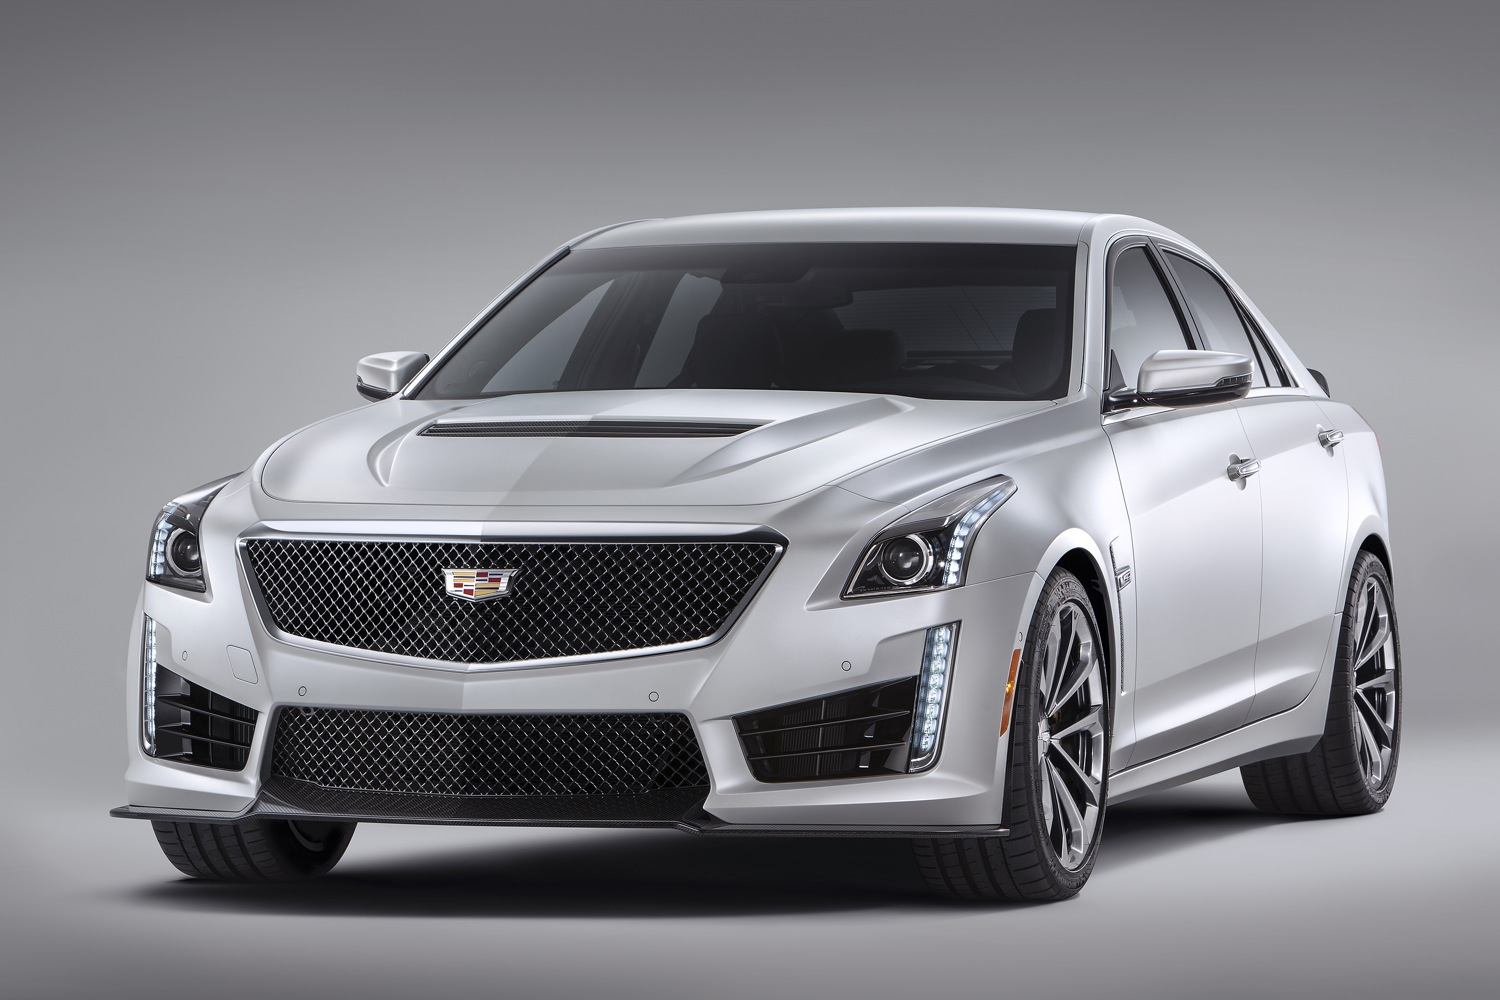 2014 Cadillac Cts V Wiring Diagram Free Wiring Diagram For You